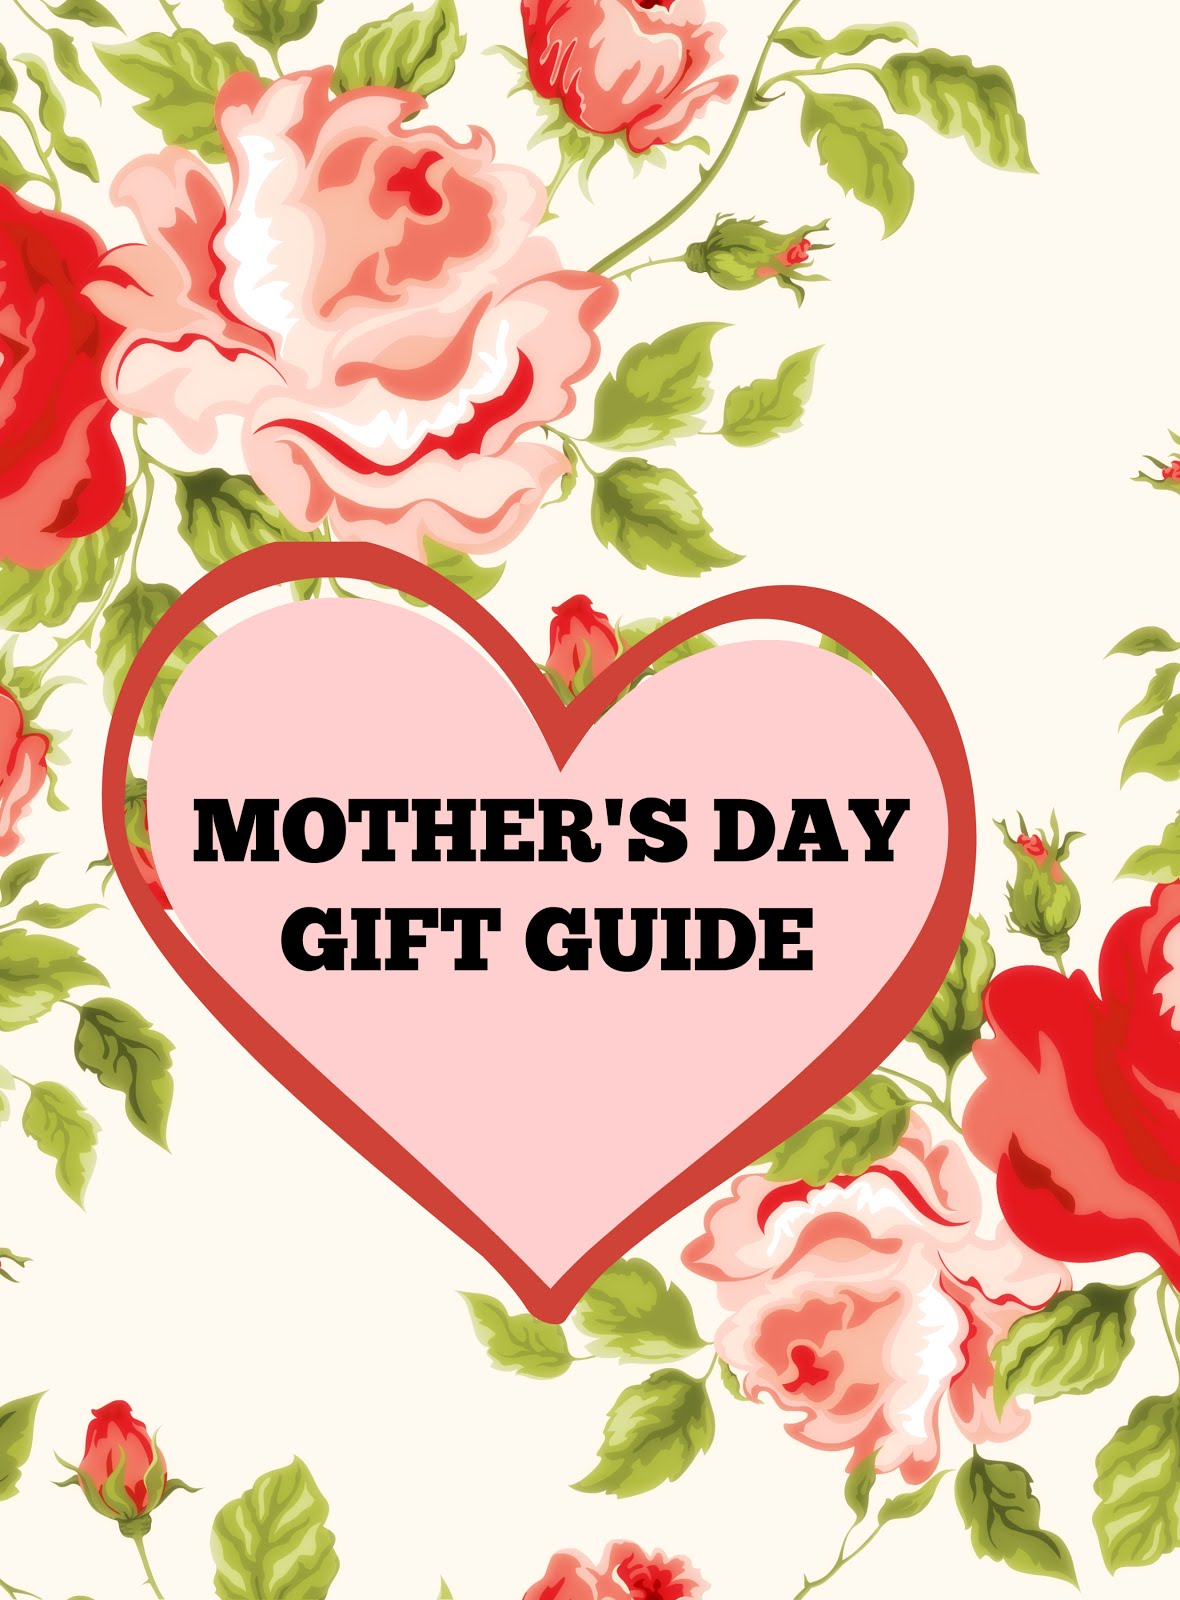 Living a Fit and Full Life's 2018 Mother's Day Gift Guide! #MOTHERSDAY2018